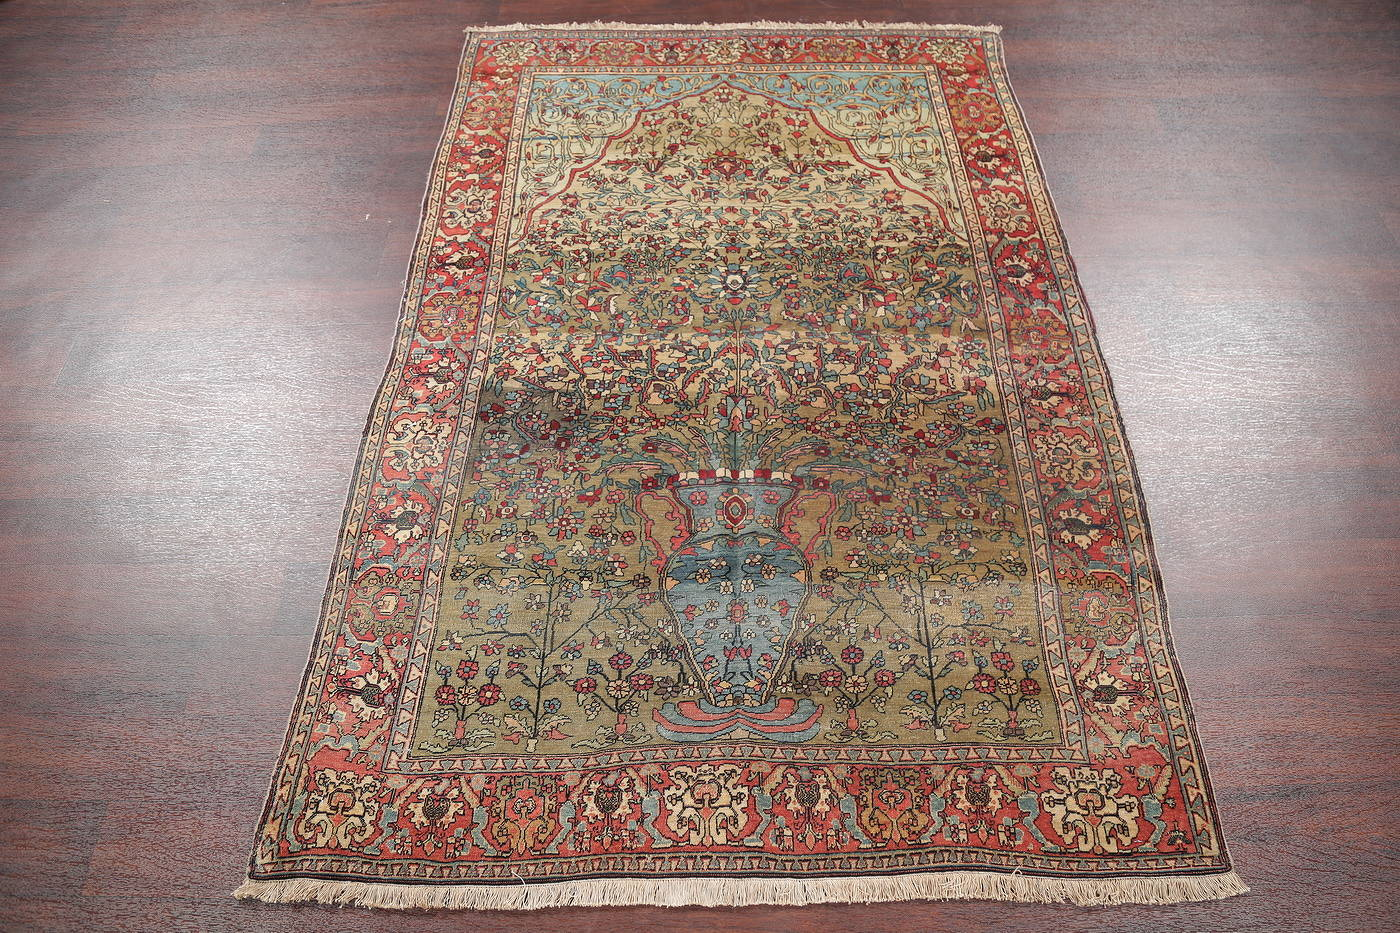 Antique Green Pictorial Kashan Mohtasham Persian Area Rug 4x6 image 19